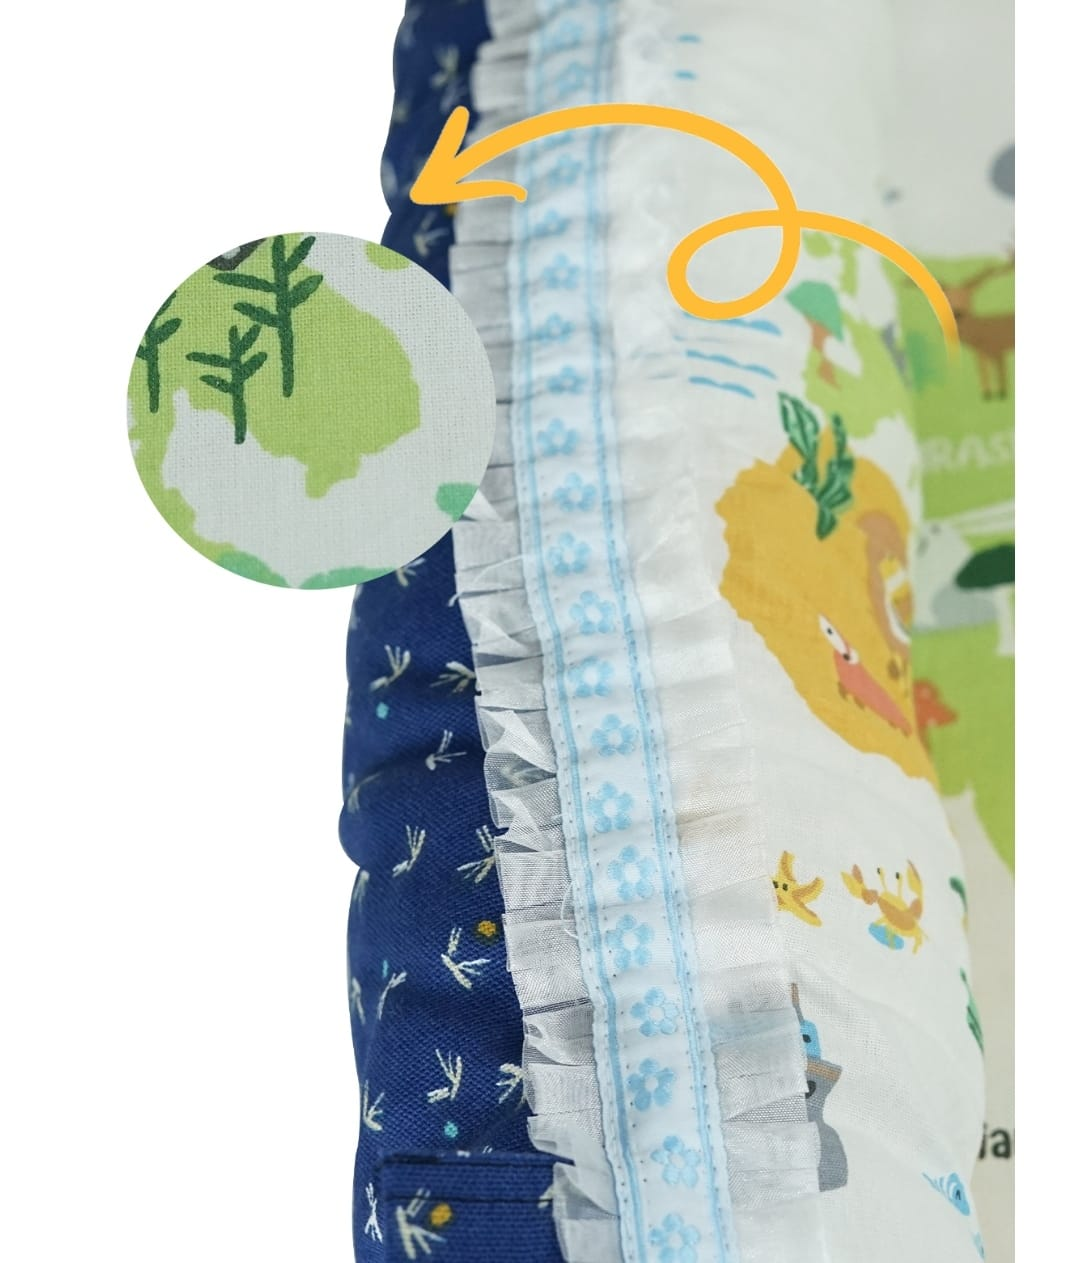 85*50 Cm Babynest Bed With Pillow Portable Crib Travel Bag Newborn Sleep Swaddle Cotton Fabric Has a Usage Range of 0-2 Years 8 enlarge